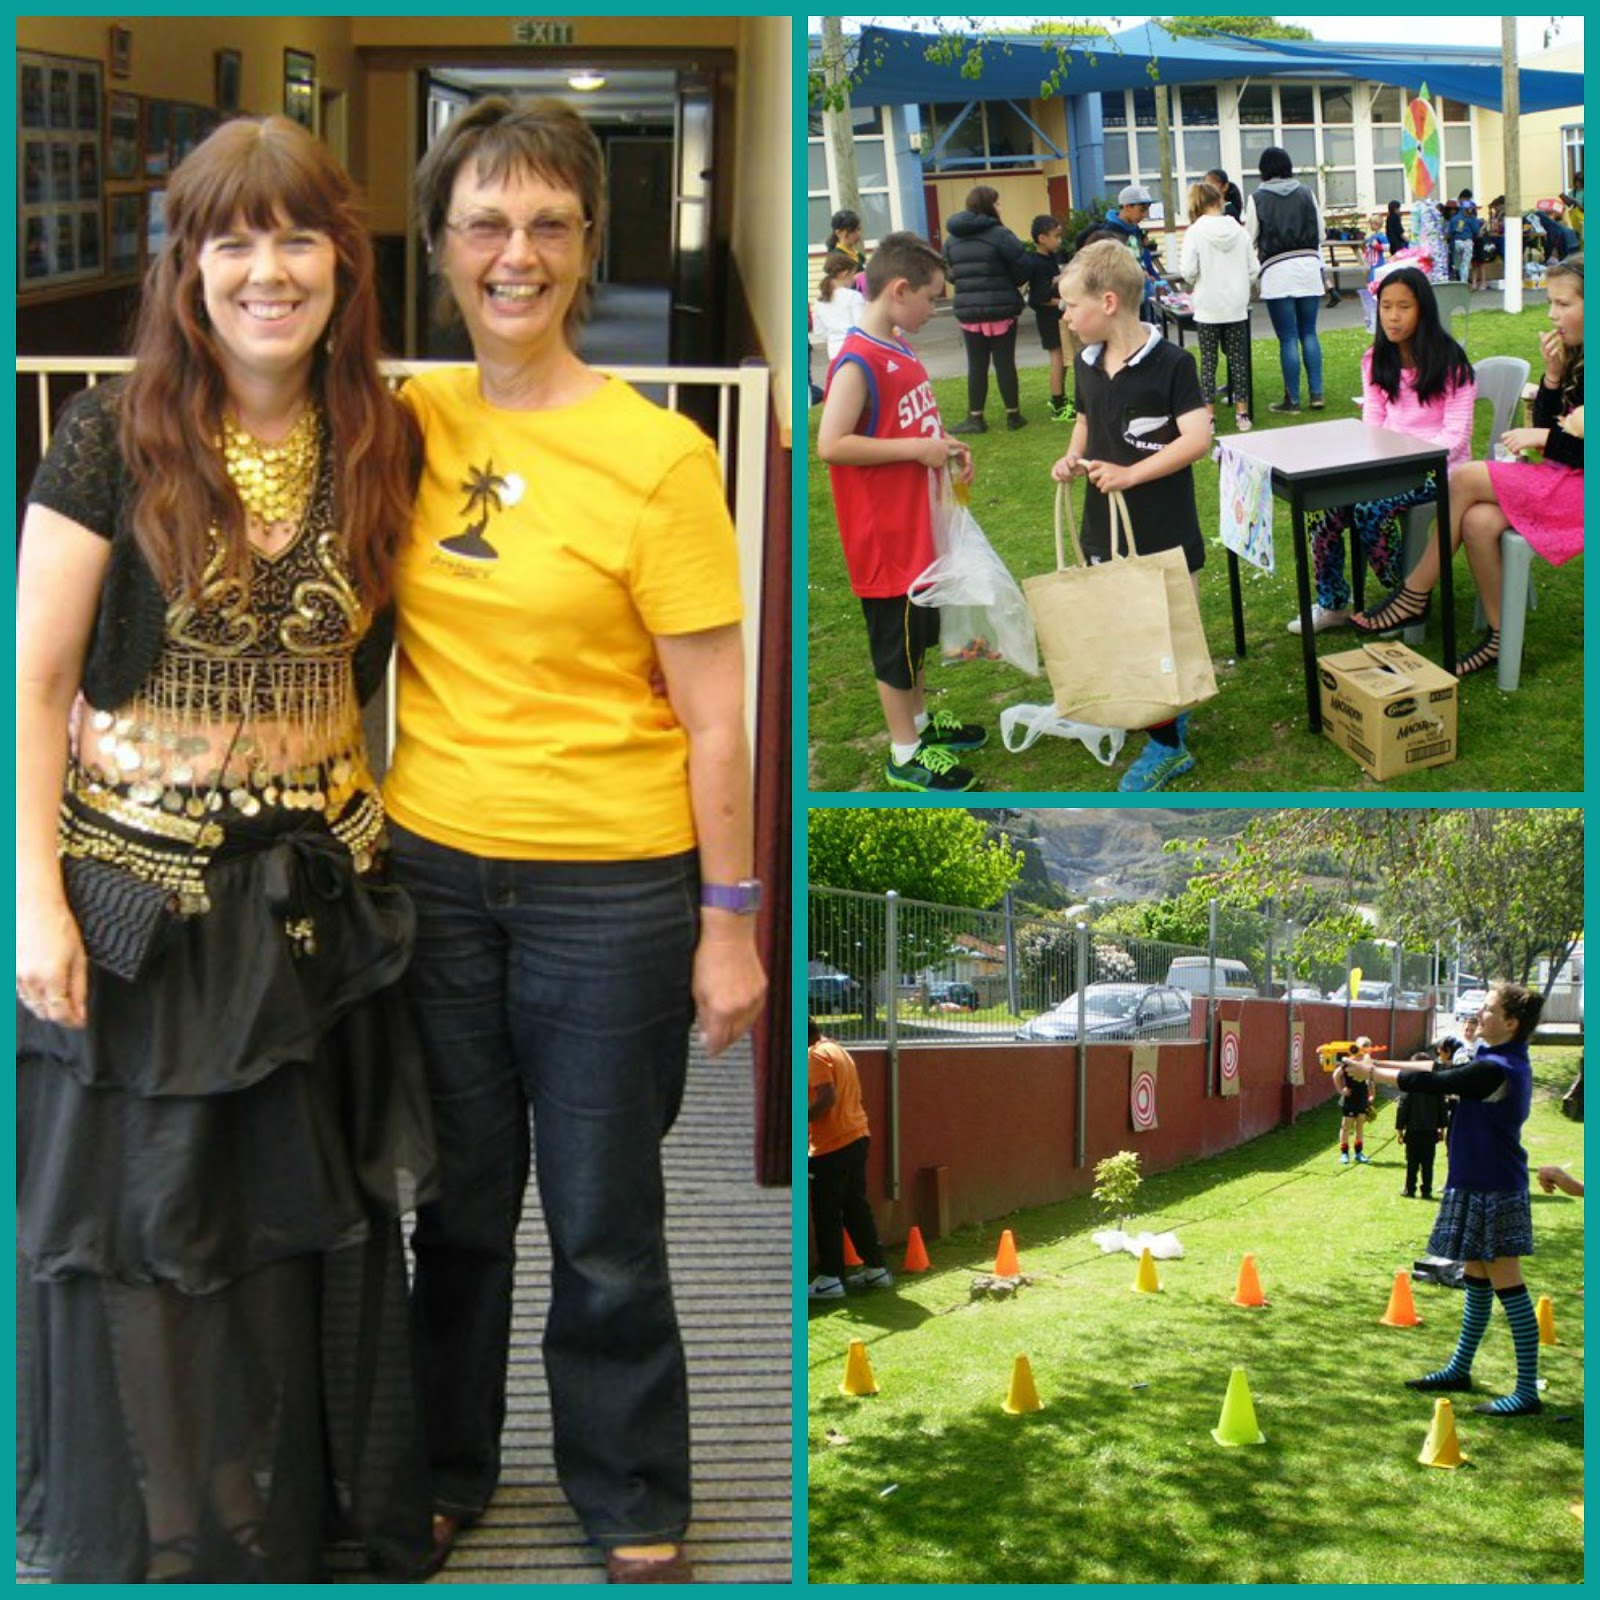 Photos of our gala day